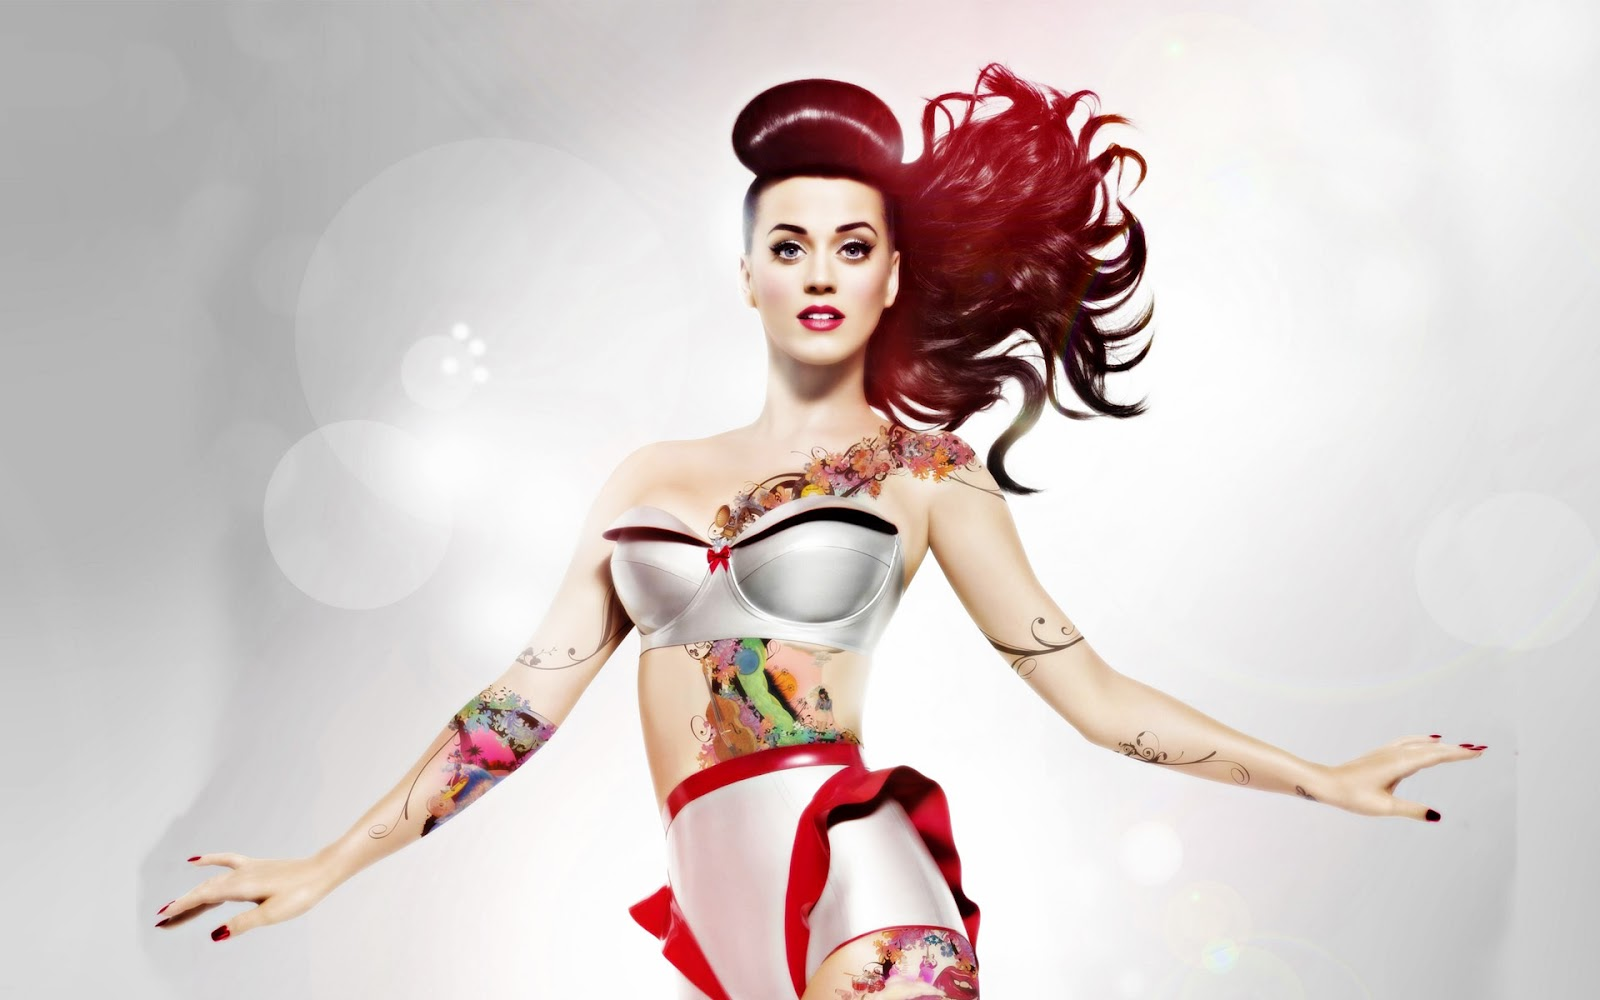 Wallpaper Collections: Katy Perry HD Wallpapers